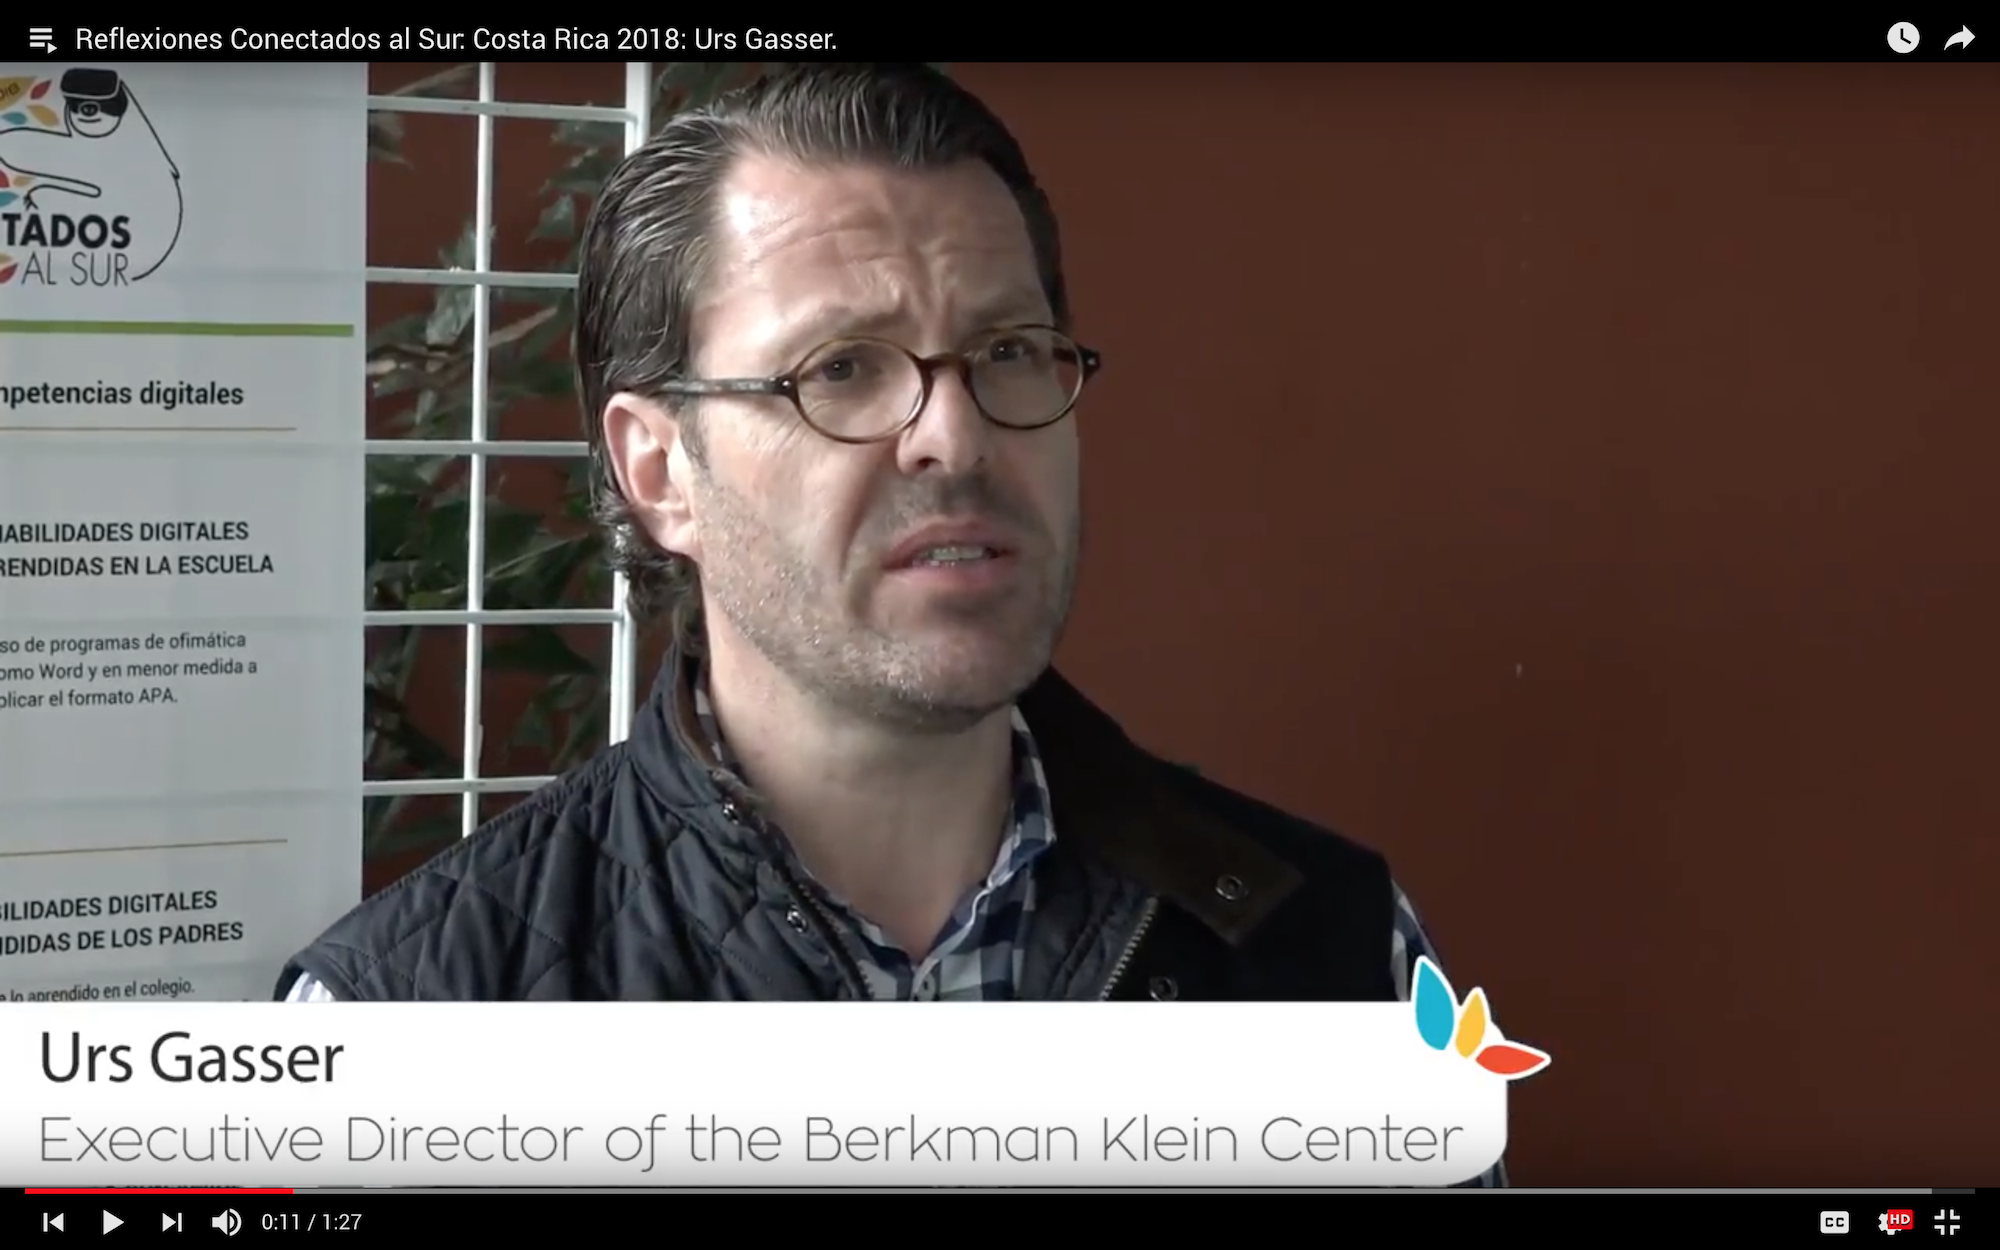 Urs Gasser, executive director of the Berkman Klein Center and Professor at Harvard Law School shares his reflections about Conectados al Sur: Costa Rica